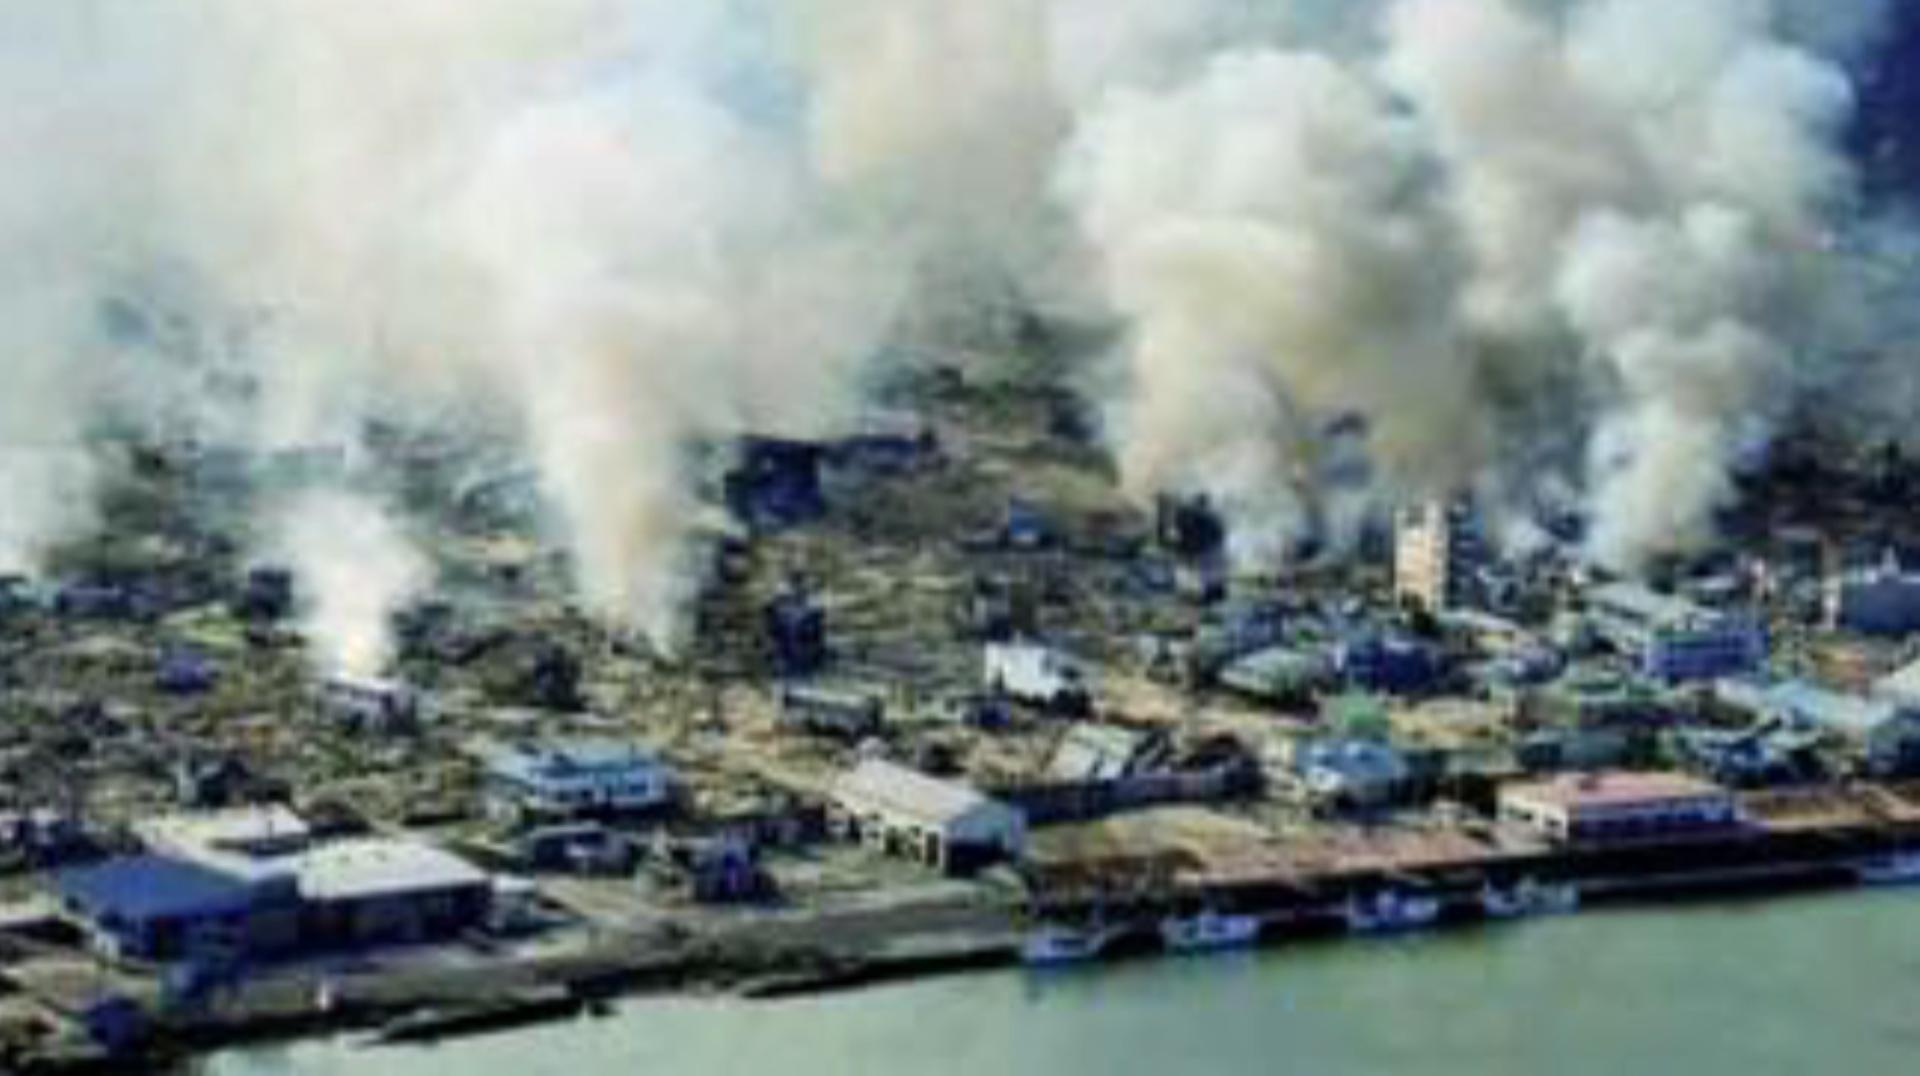 Japan bear the cost of the aftermath of the Fukushima nuclear accident, a total of 4 trillion and 200 billion yen